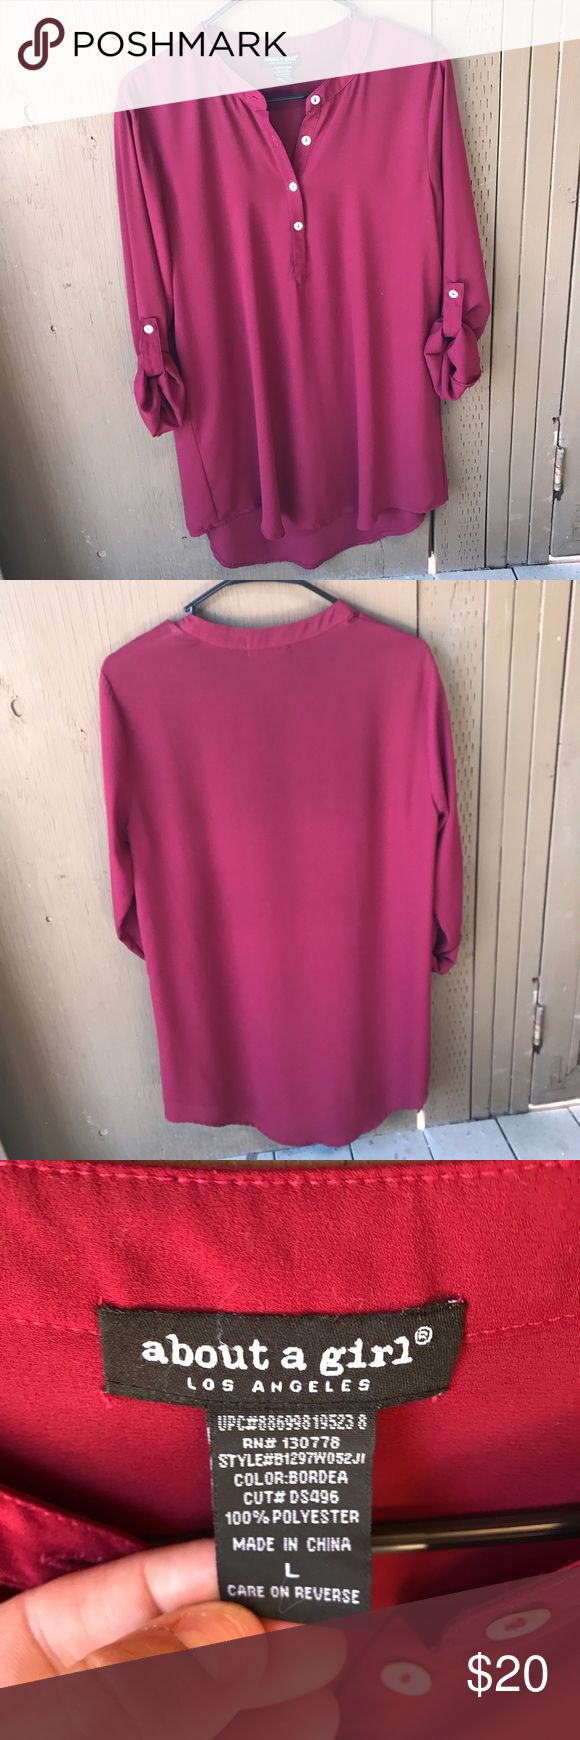 Maroon long dress shirt This is a brand new long dress shirt. It's made of polyester. About A Girl Tops Blouses